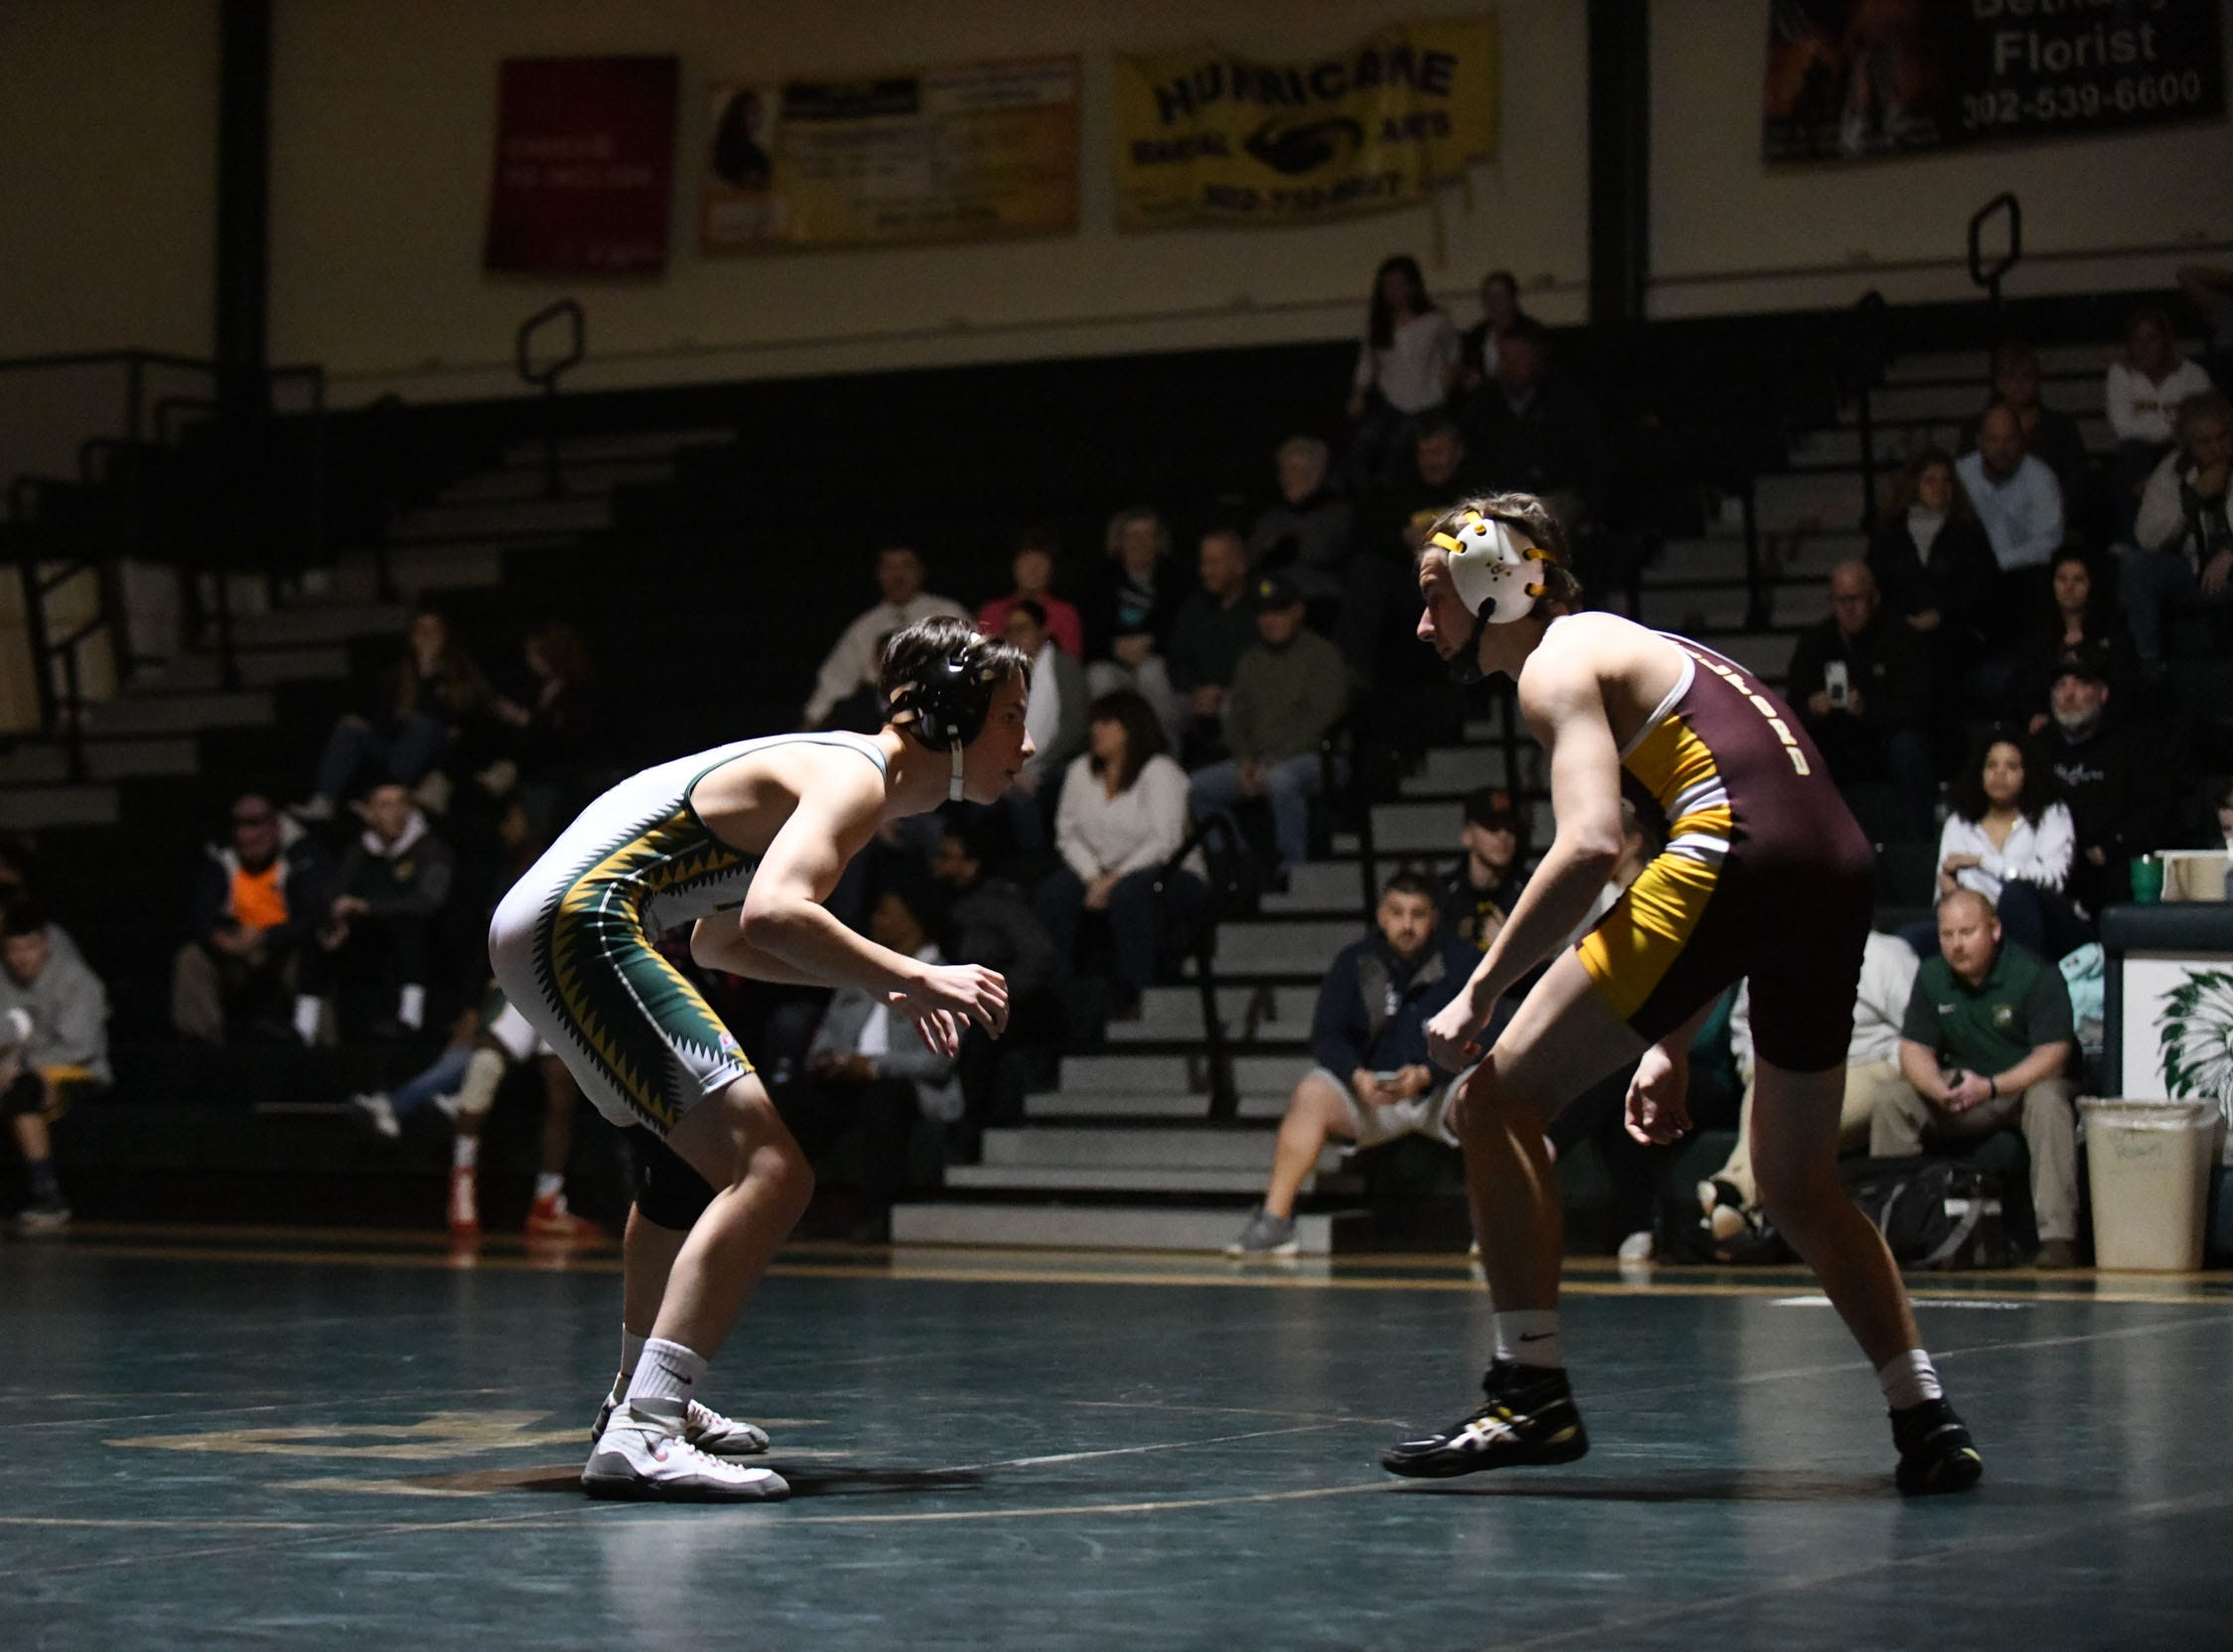 Indian River's Cody Edwards battled Milford's Jordan Passwaters during the 145lb match on Thursday, Jan 17, 2019 in Dagsboro, Del. Milford won the match 53-15.